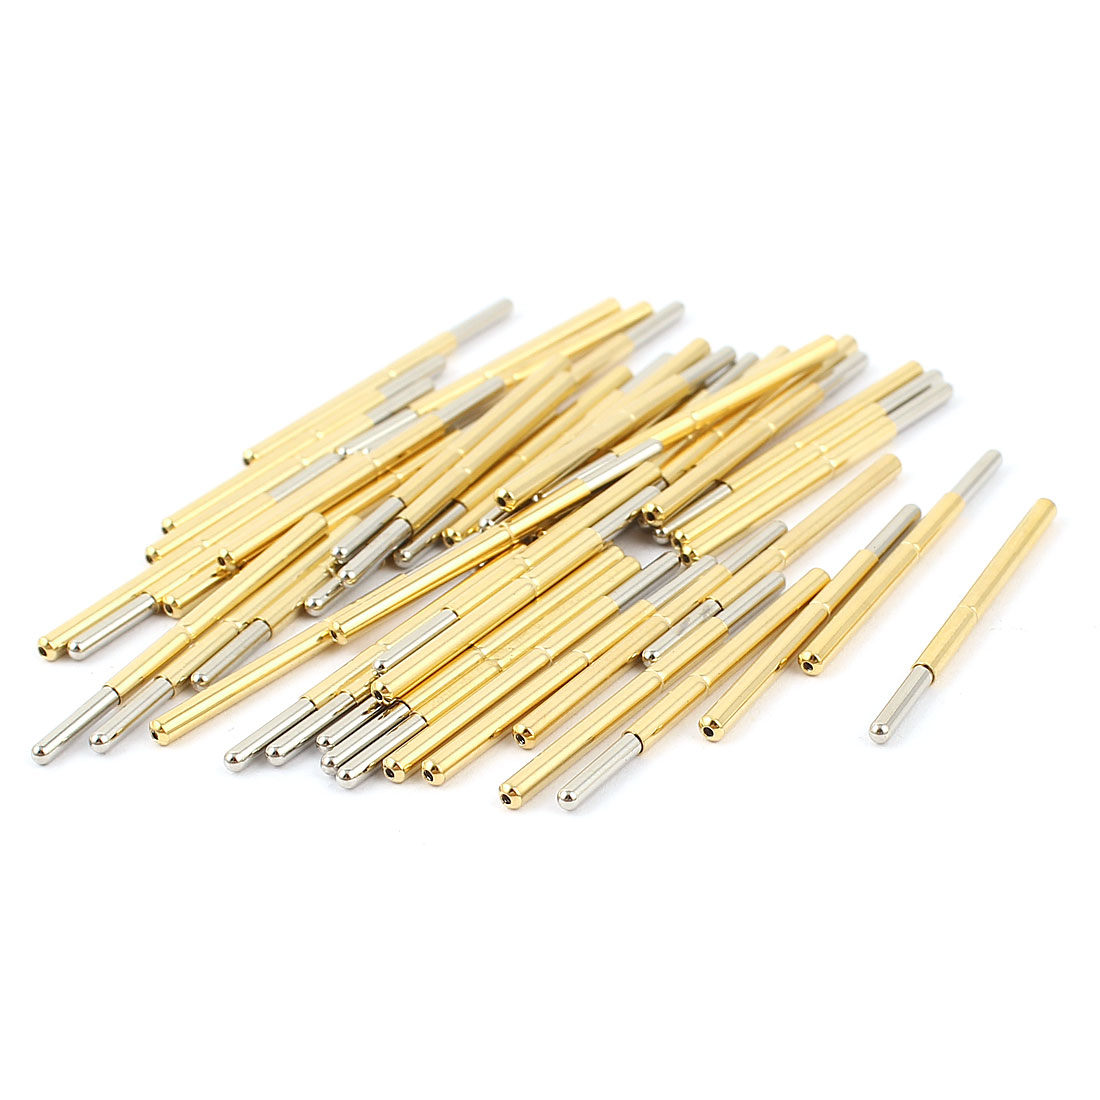 50 Pcs P125-J 1.7mm Spherical Tip Spring Testing Probes Pin 33.3mm Length